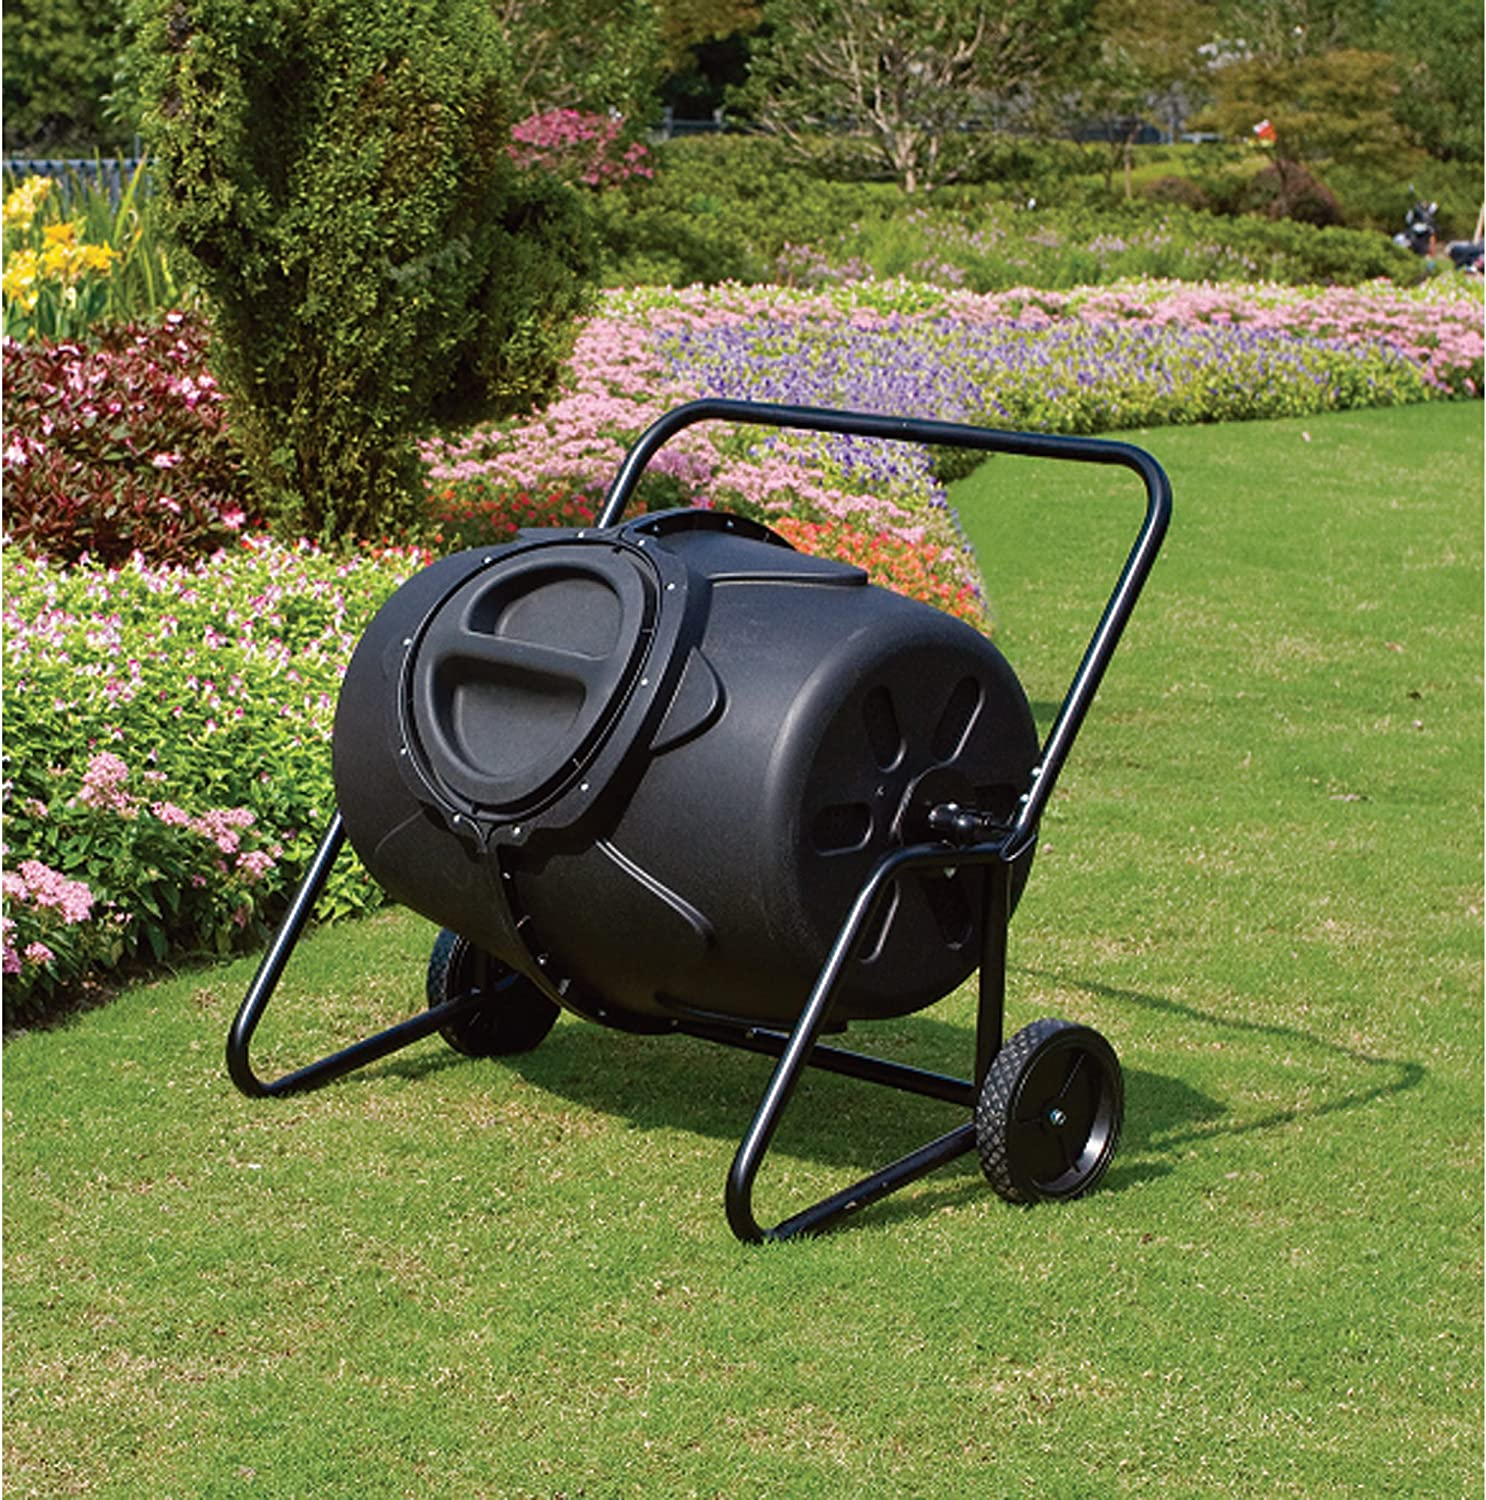 Kotulas 50-Gallon Wheeled Compost Tumbler : Best for Composting Tumbler Newbies